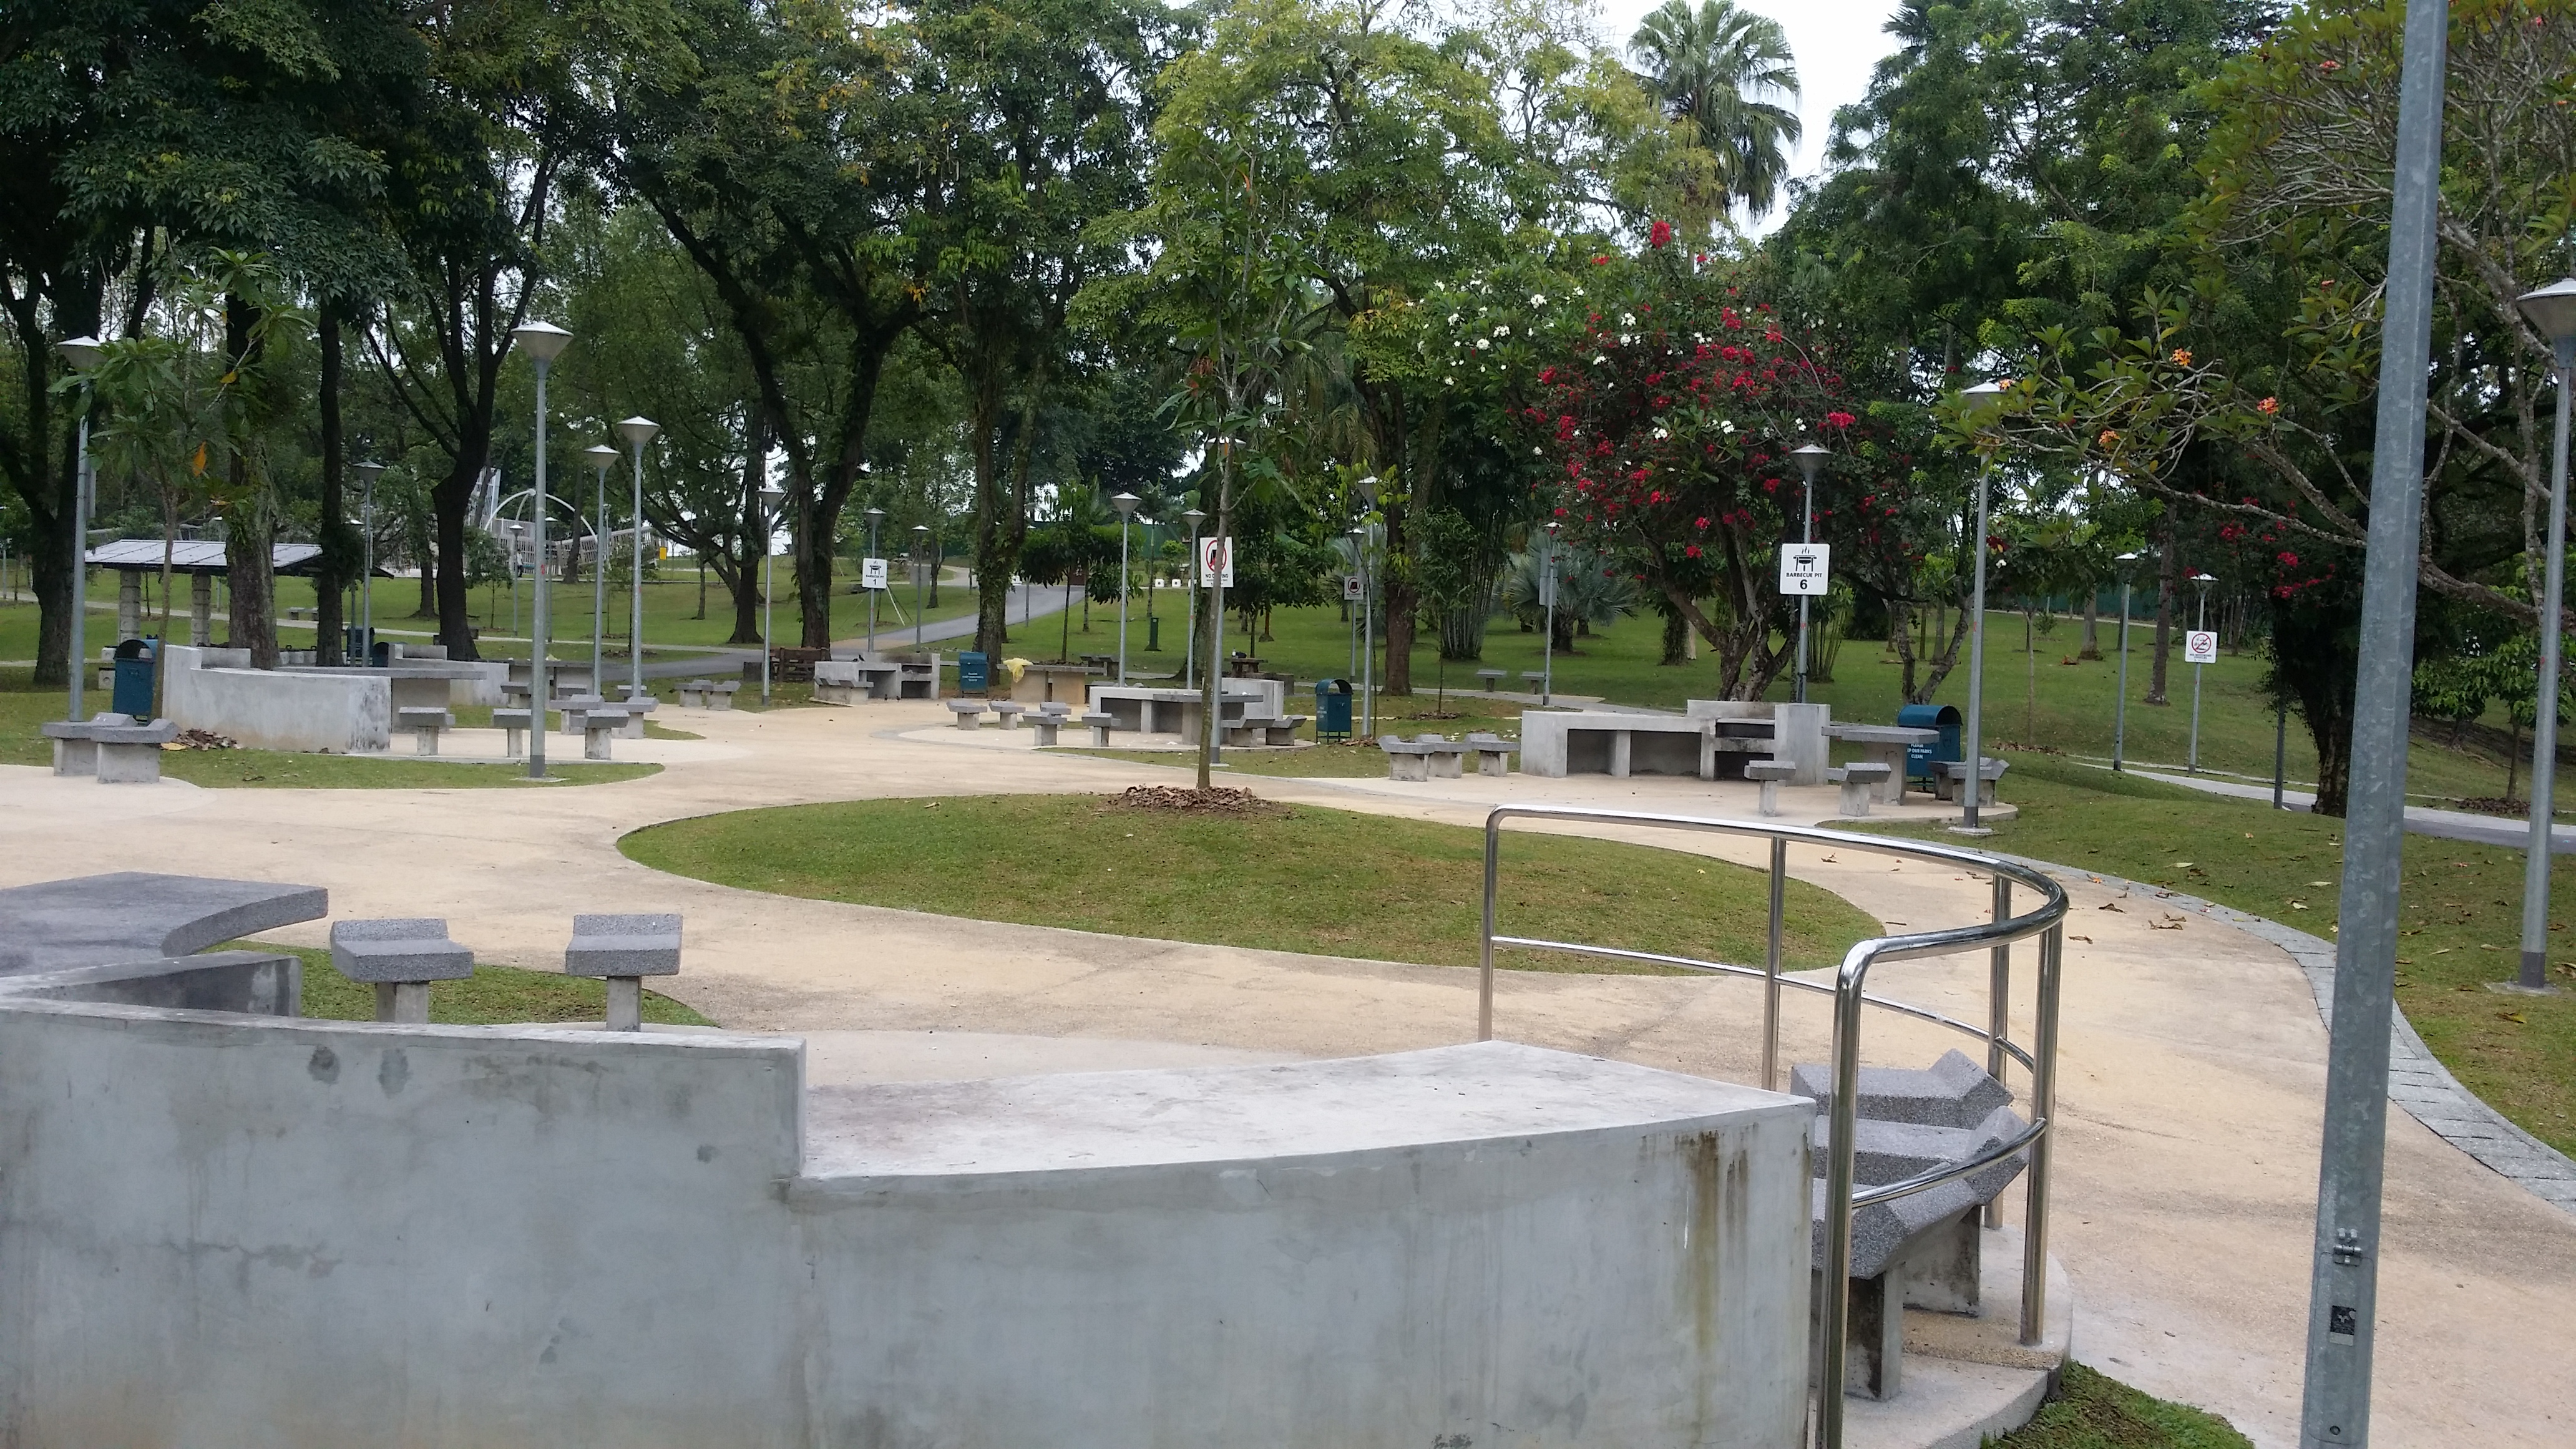 Sembawang Park Barbeque pit